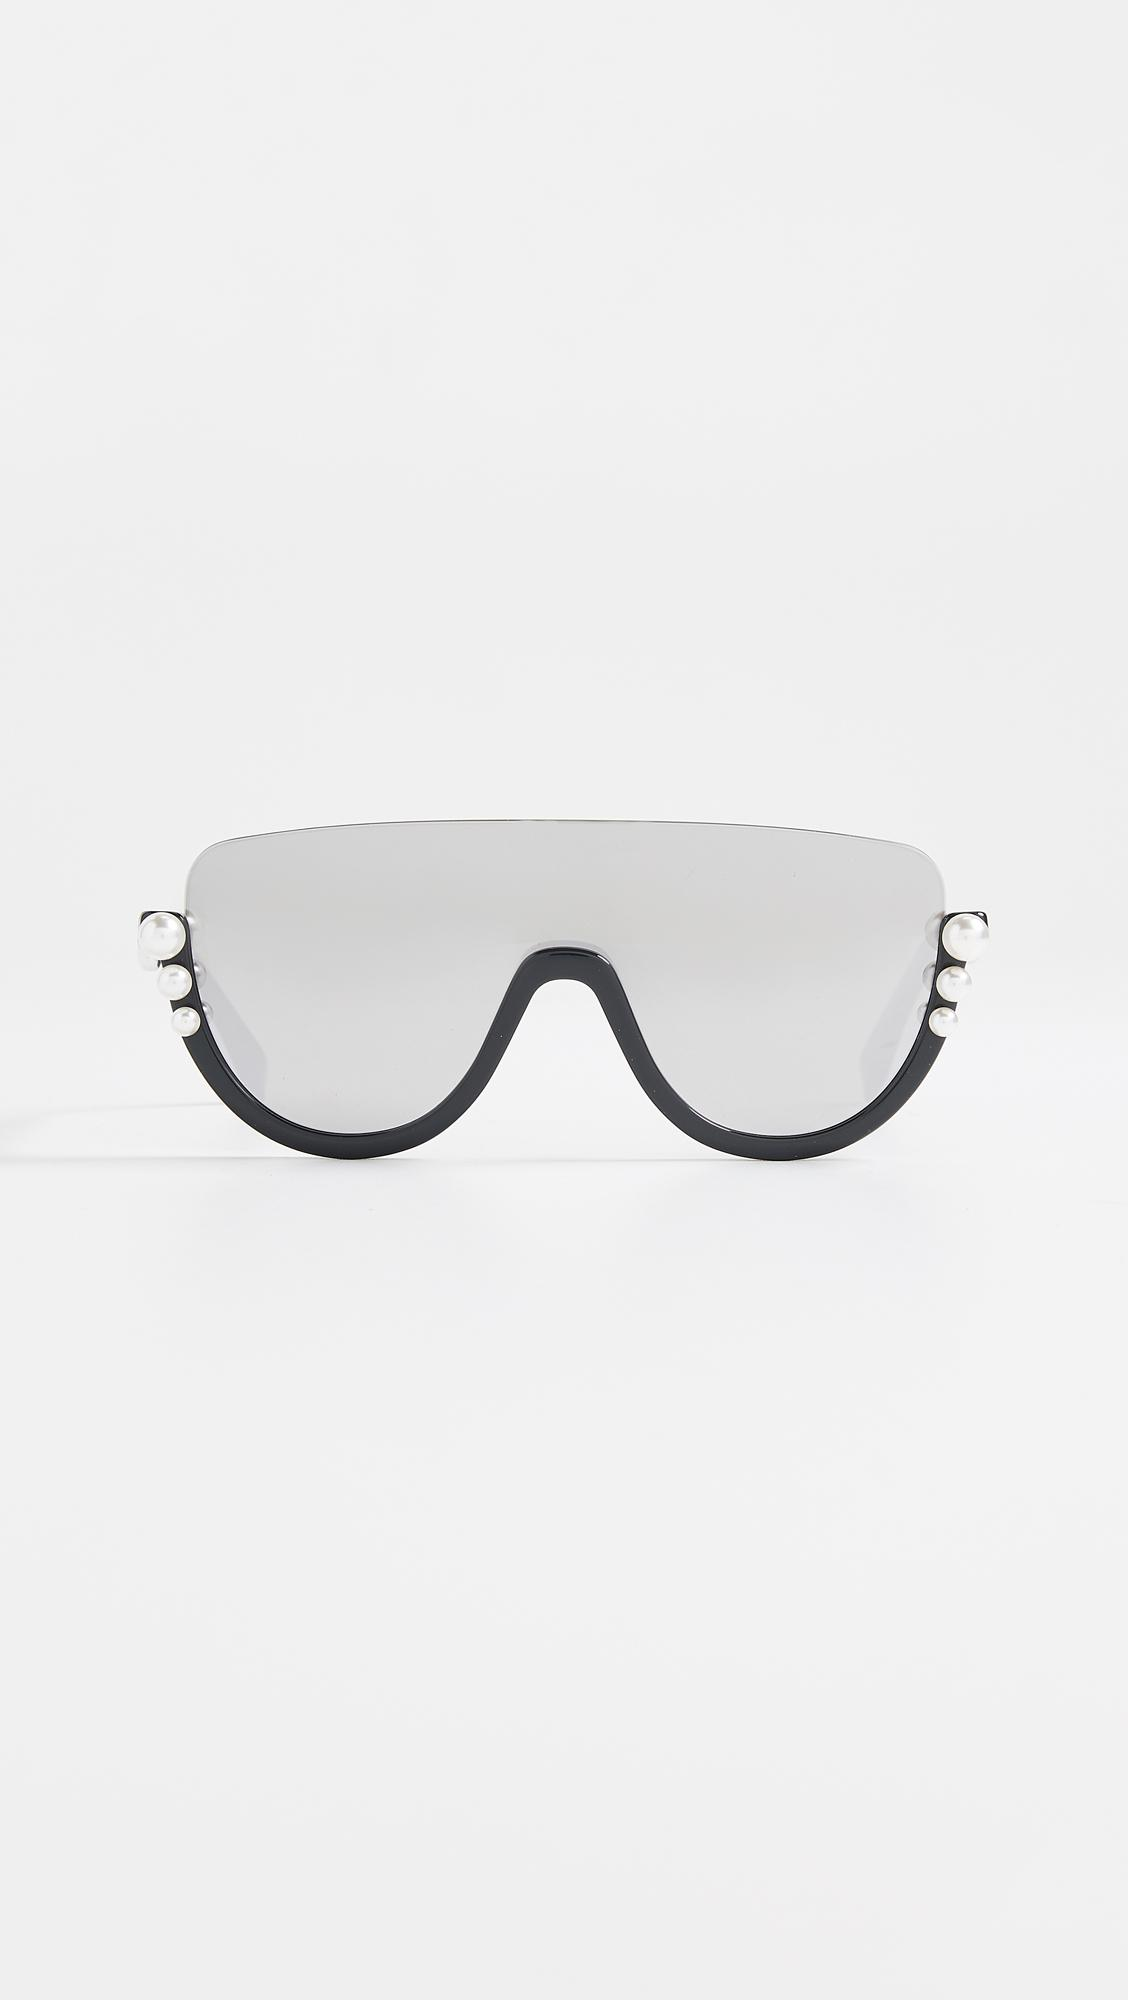 Lyst - Fendi Bottom Frame Imitation Pearl Sunglasses